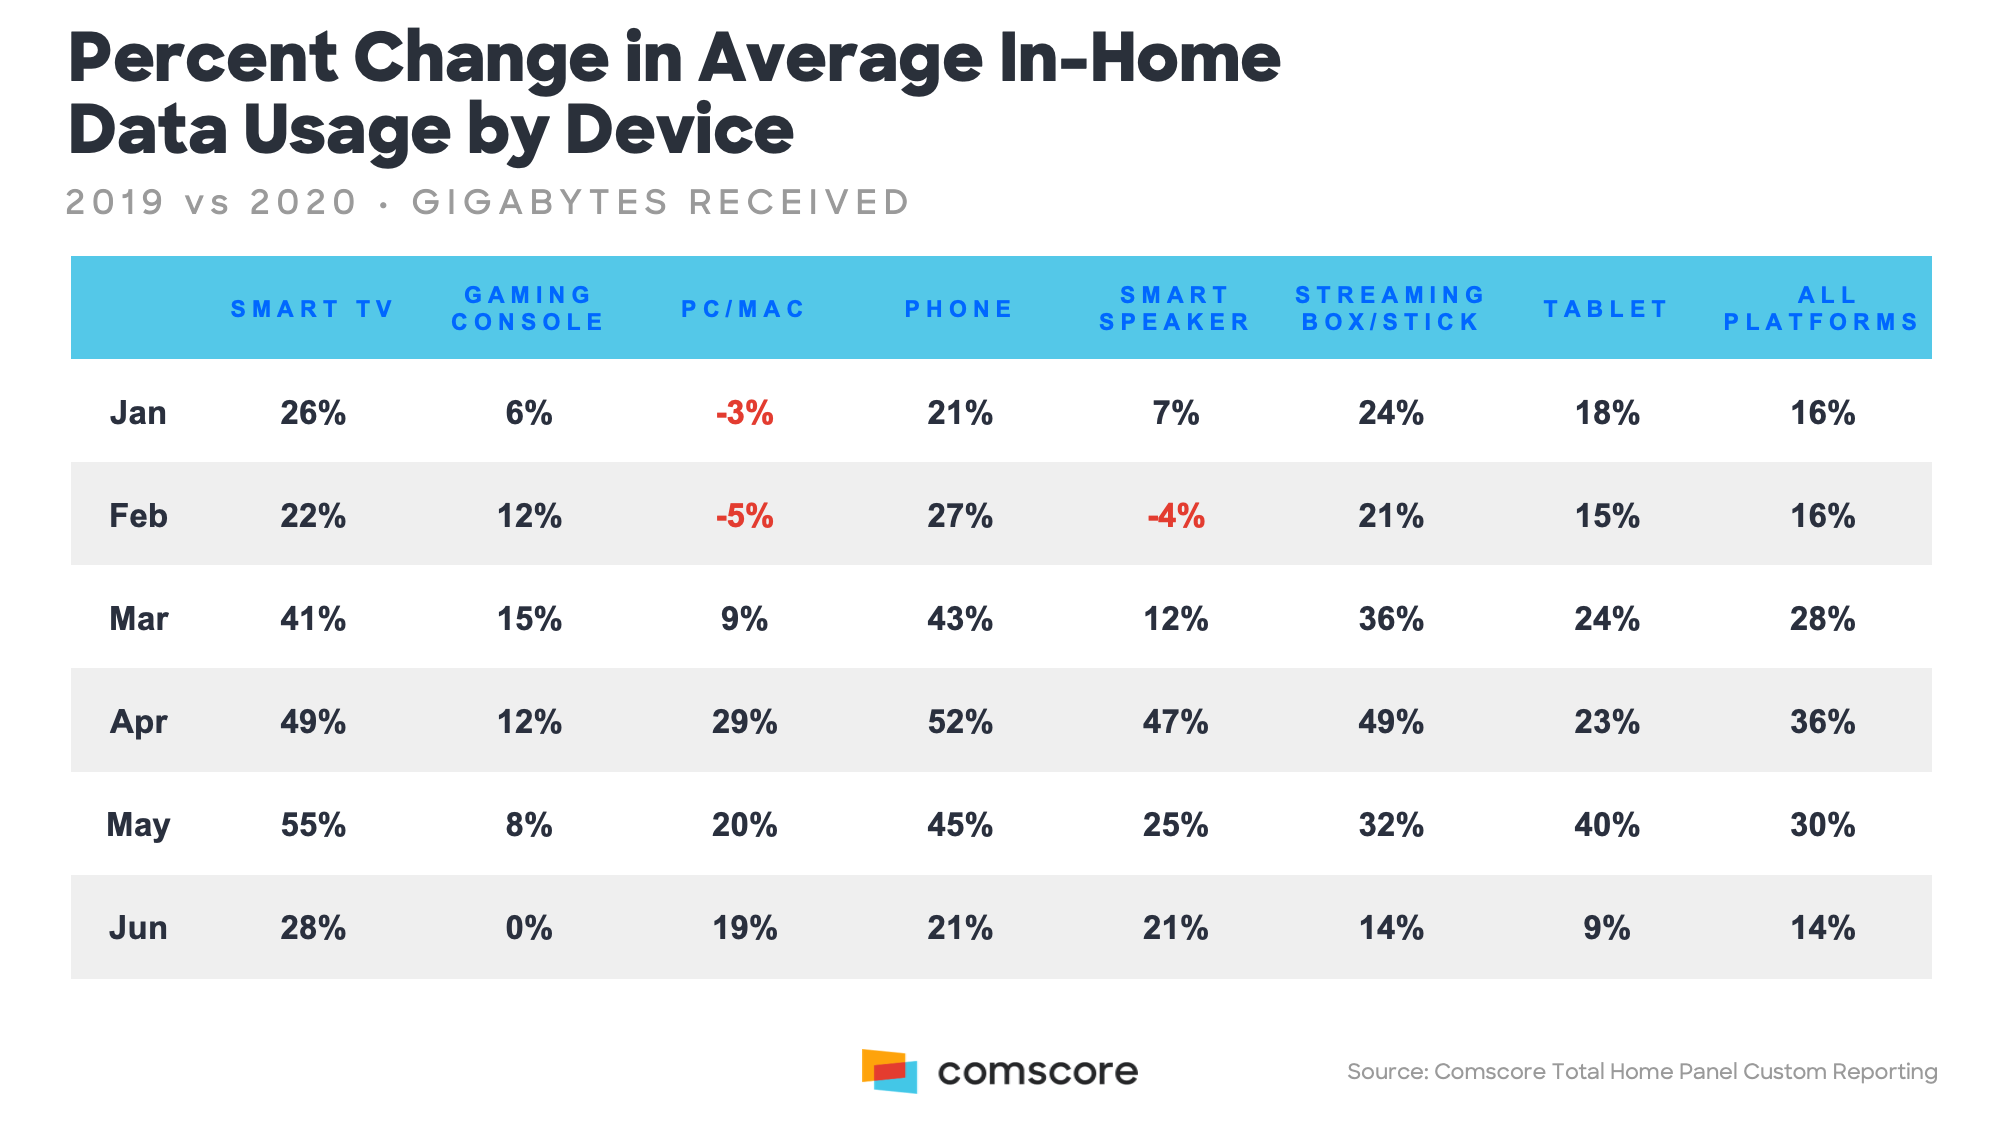 Percent Change in Average InHome Data Usage by Device